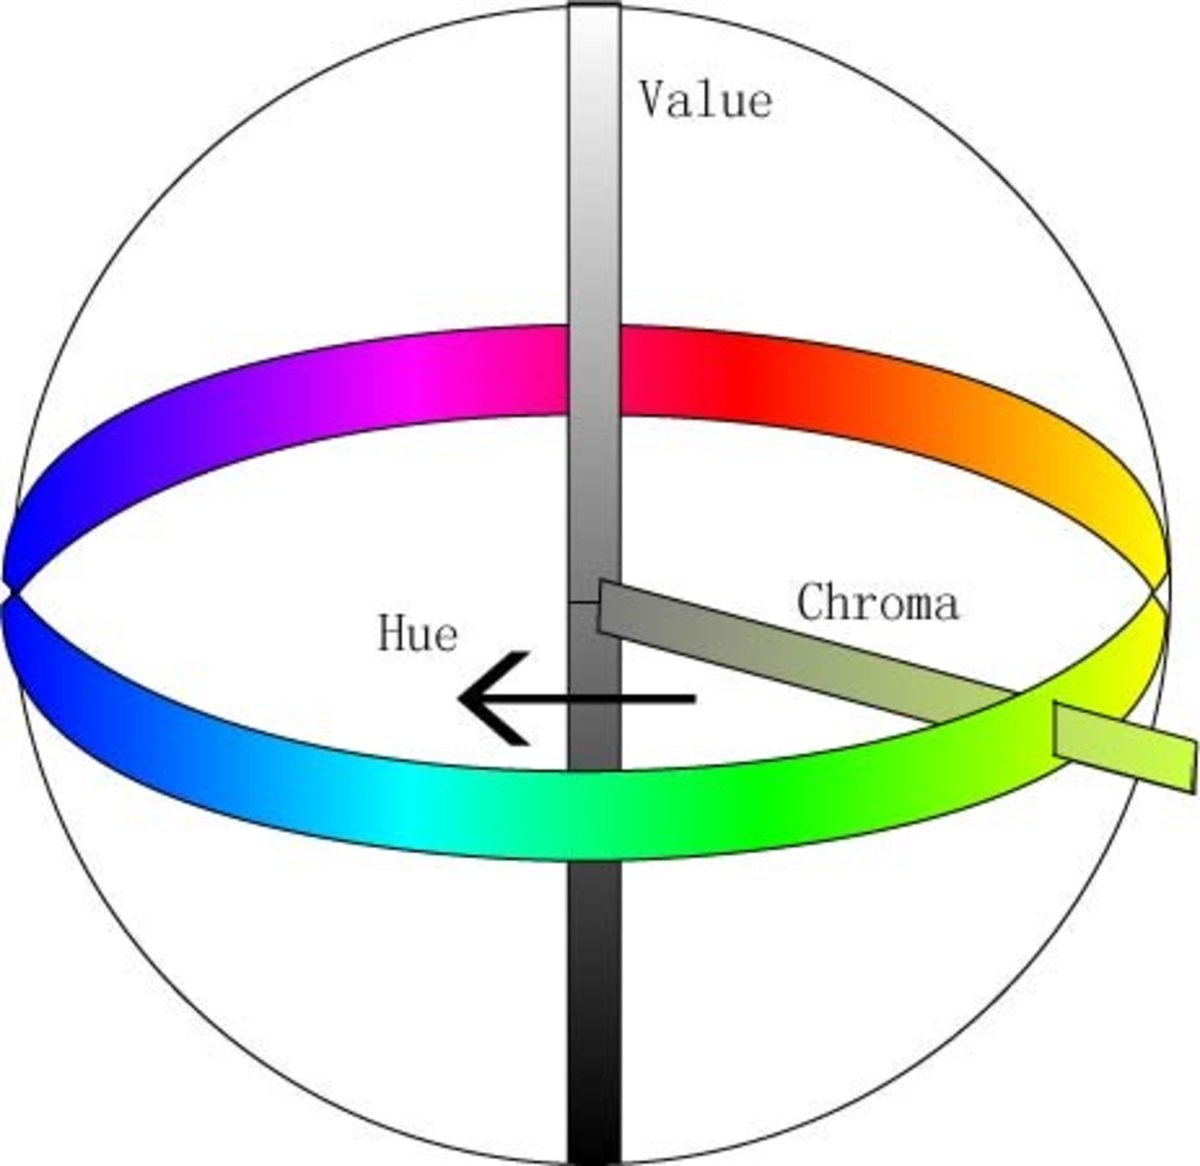 Fig. 1 Structure of the Munsell color system in space. The 3-D Munsell Color System